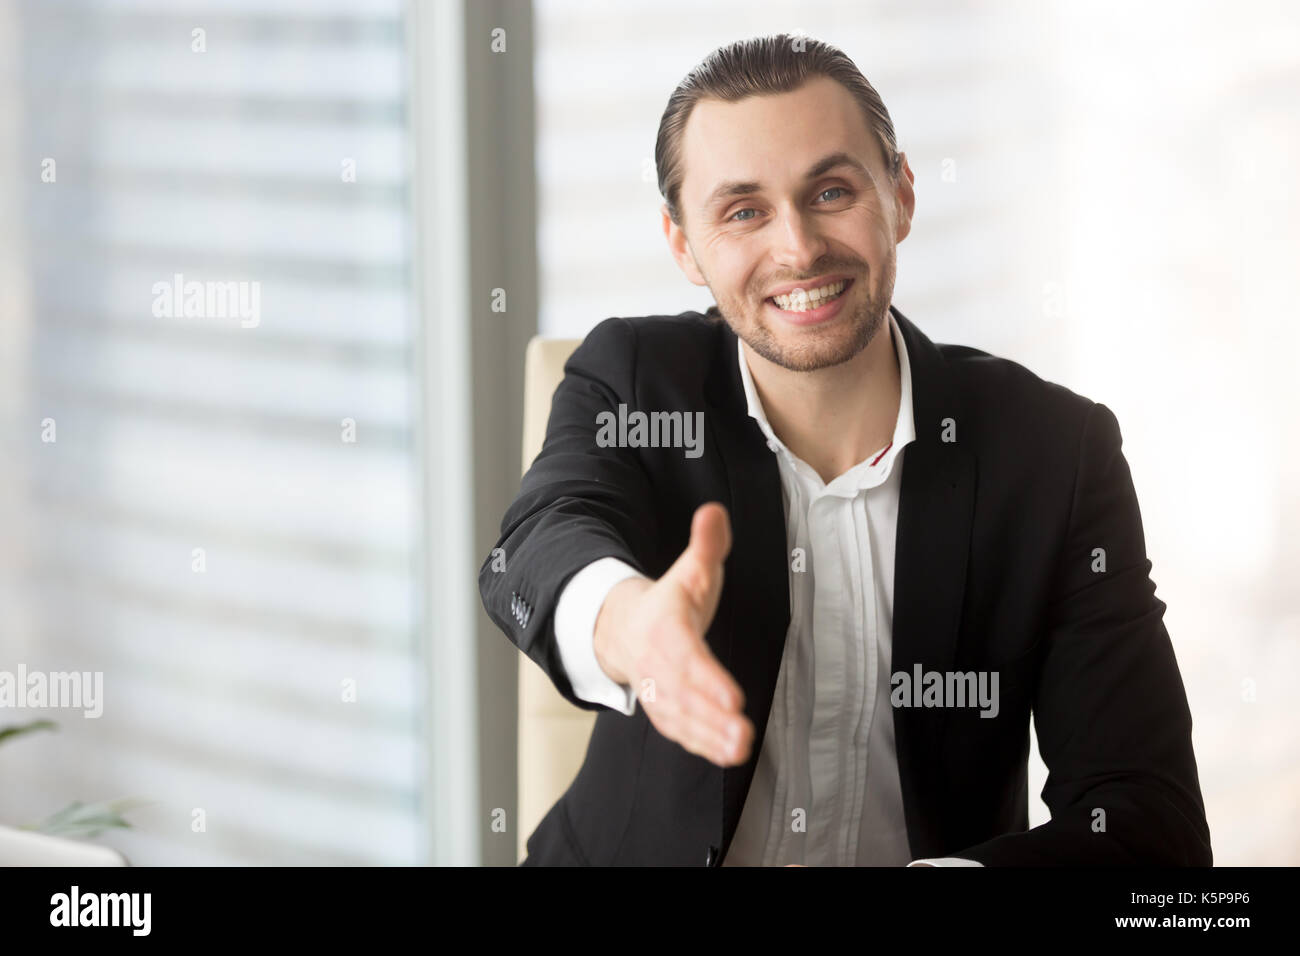 Friendly smiling businessman offering hand for greeting or agree - Stock Image